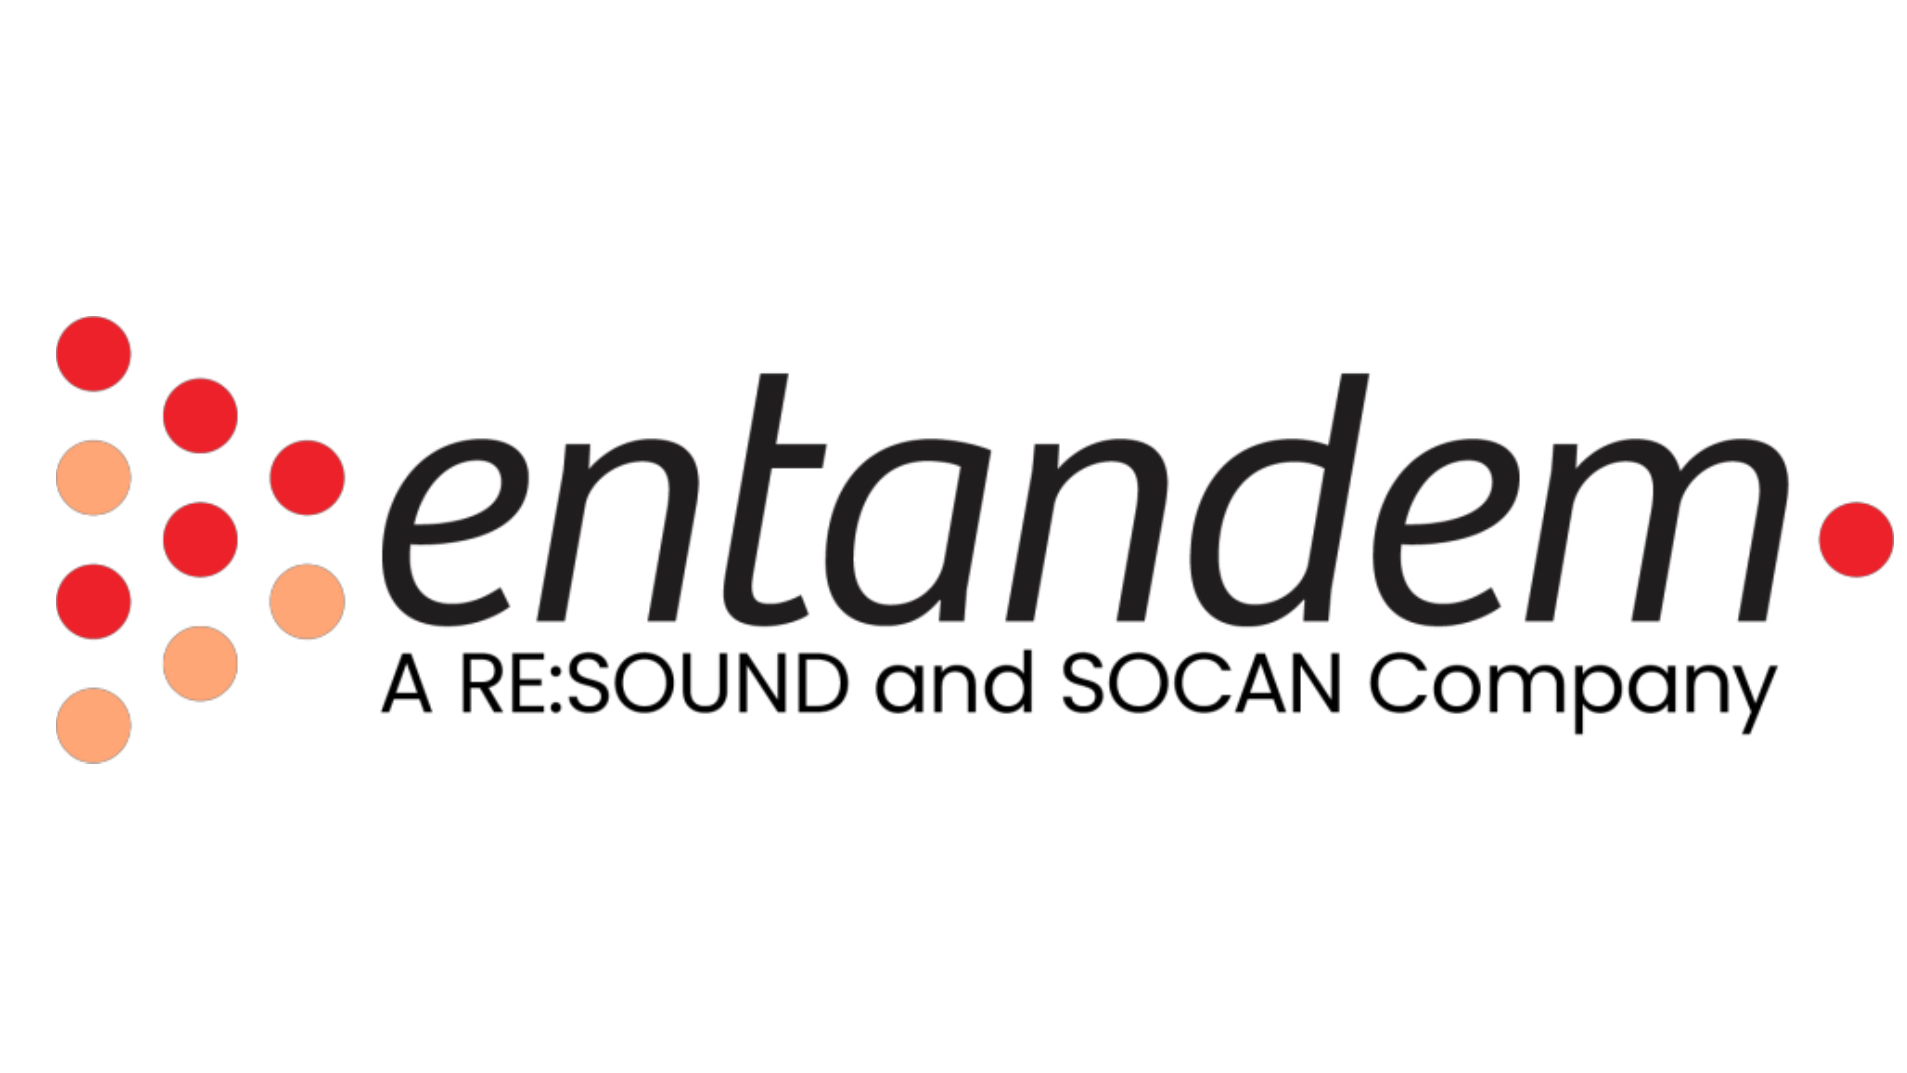 Canada's RE:SOUND and SOCAN launch Entandem JV to offer